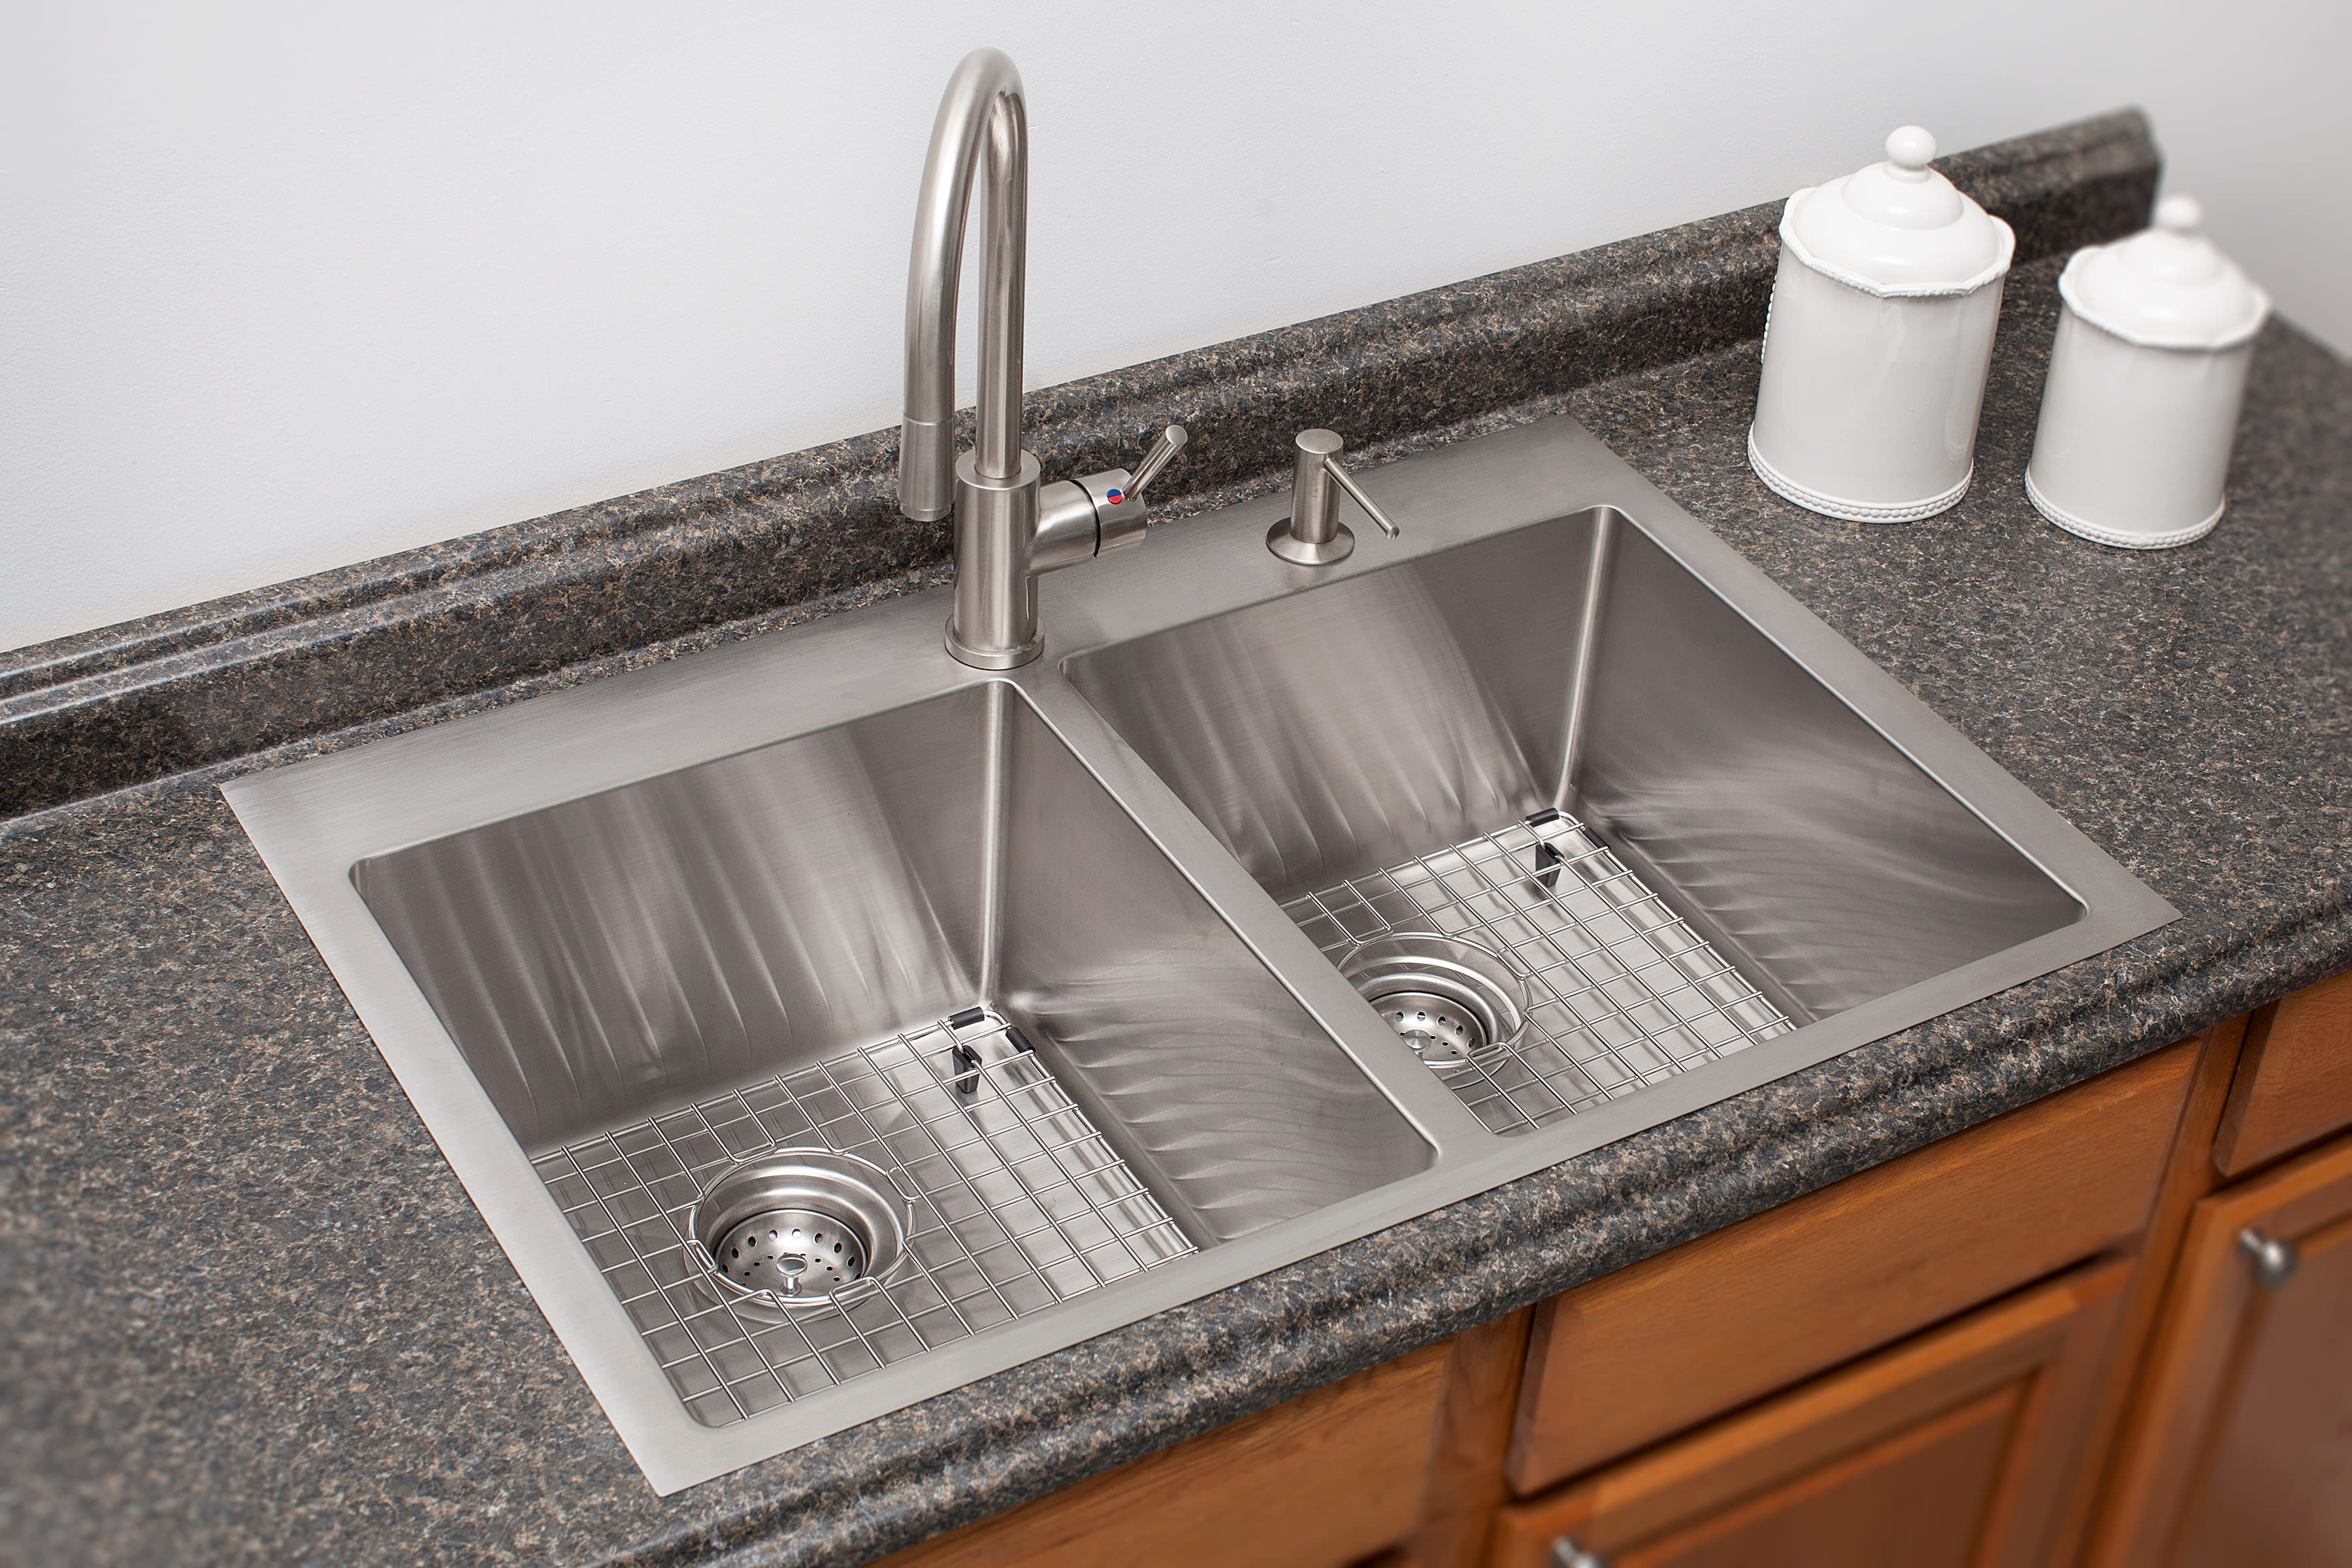 Franke Hf3322 1kit Stainless Steel Vector 33 7 16 Dual Mount Double Basin 18 Gauge Kitchen Sink Accessories Included Faucet